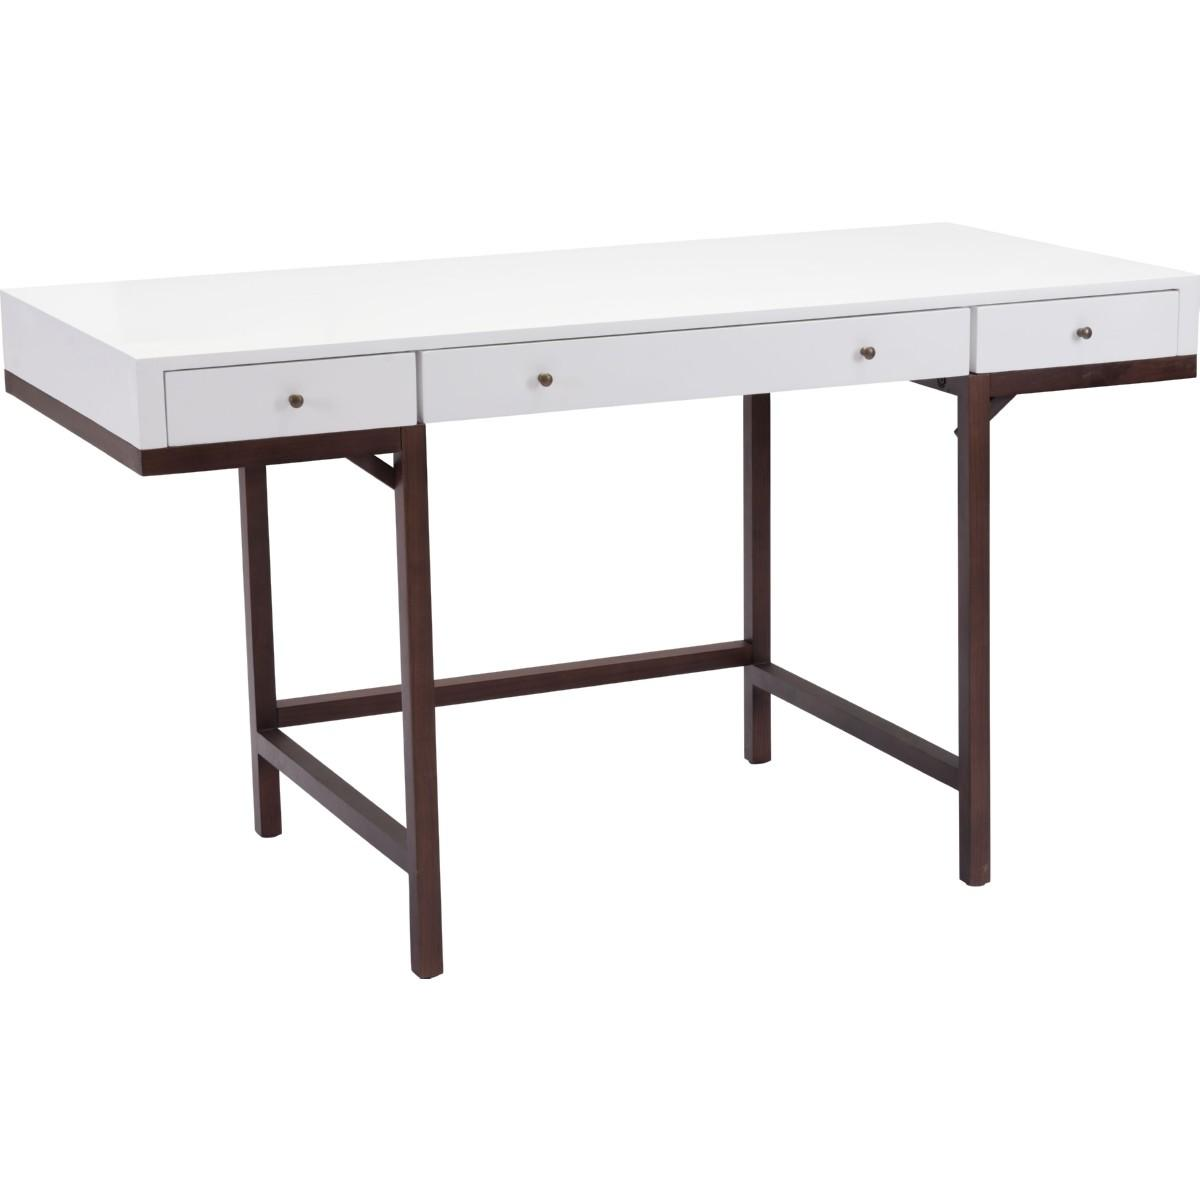 Zuo Furniture Modern Home Decor Desks Dynamic